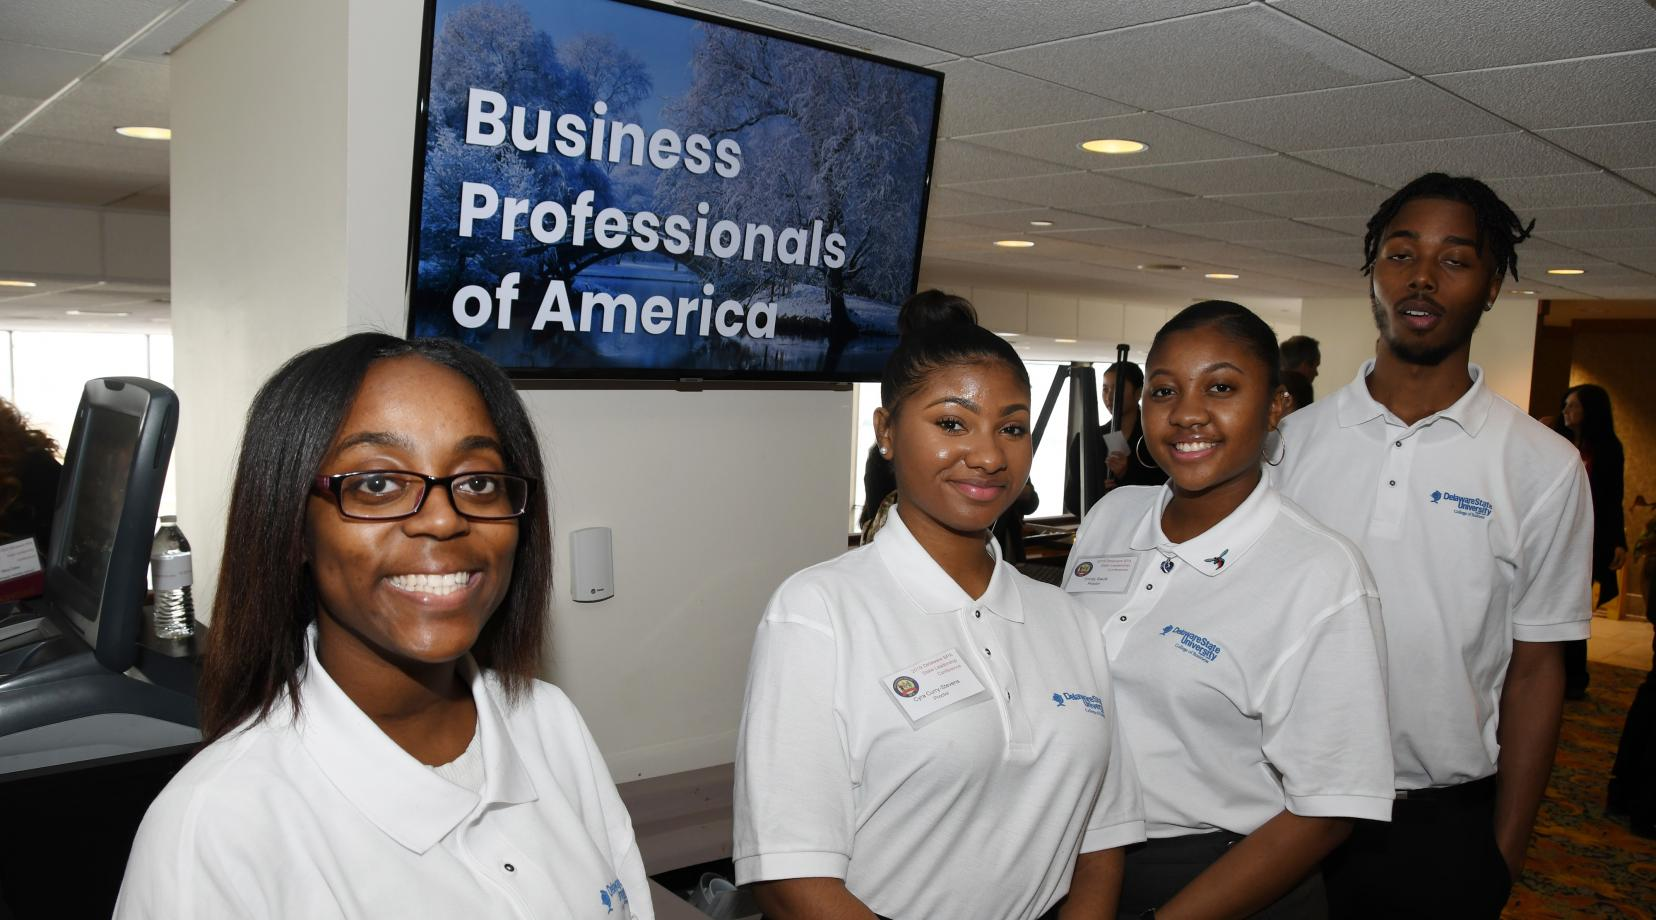 <p>(L-r) University students Charlyeshia Jones, Trinity Savis, Tyra Curry-Stevens and Marvin Hagwood were among the 90 Delaware State University students who volunteered as proctors for the Delaware Business Professionals of America Leadership Conference held at Dover Downs Hotel and Casino Feb. 26-27.</p>